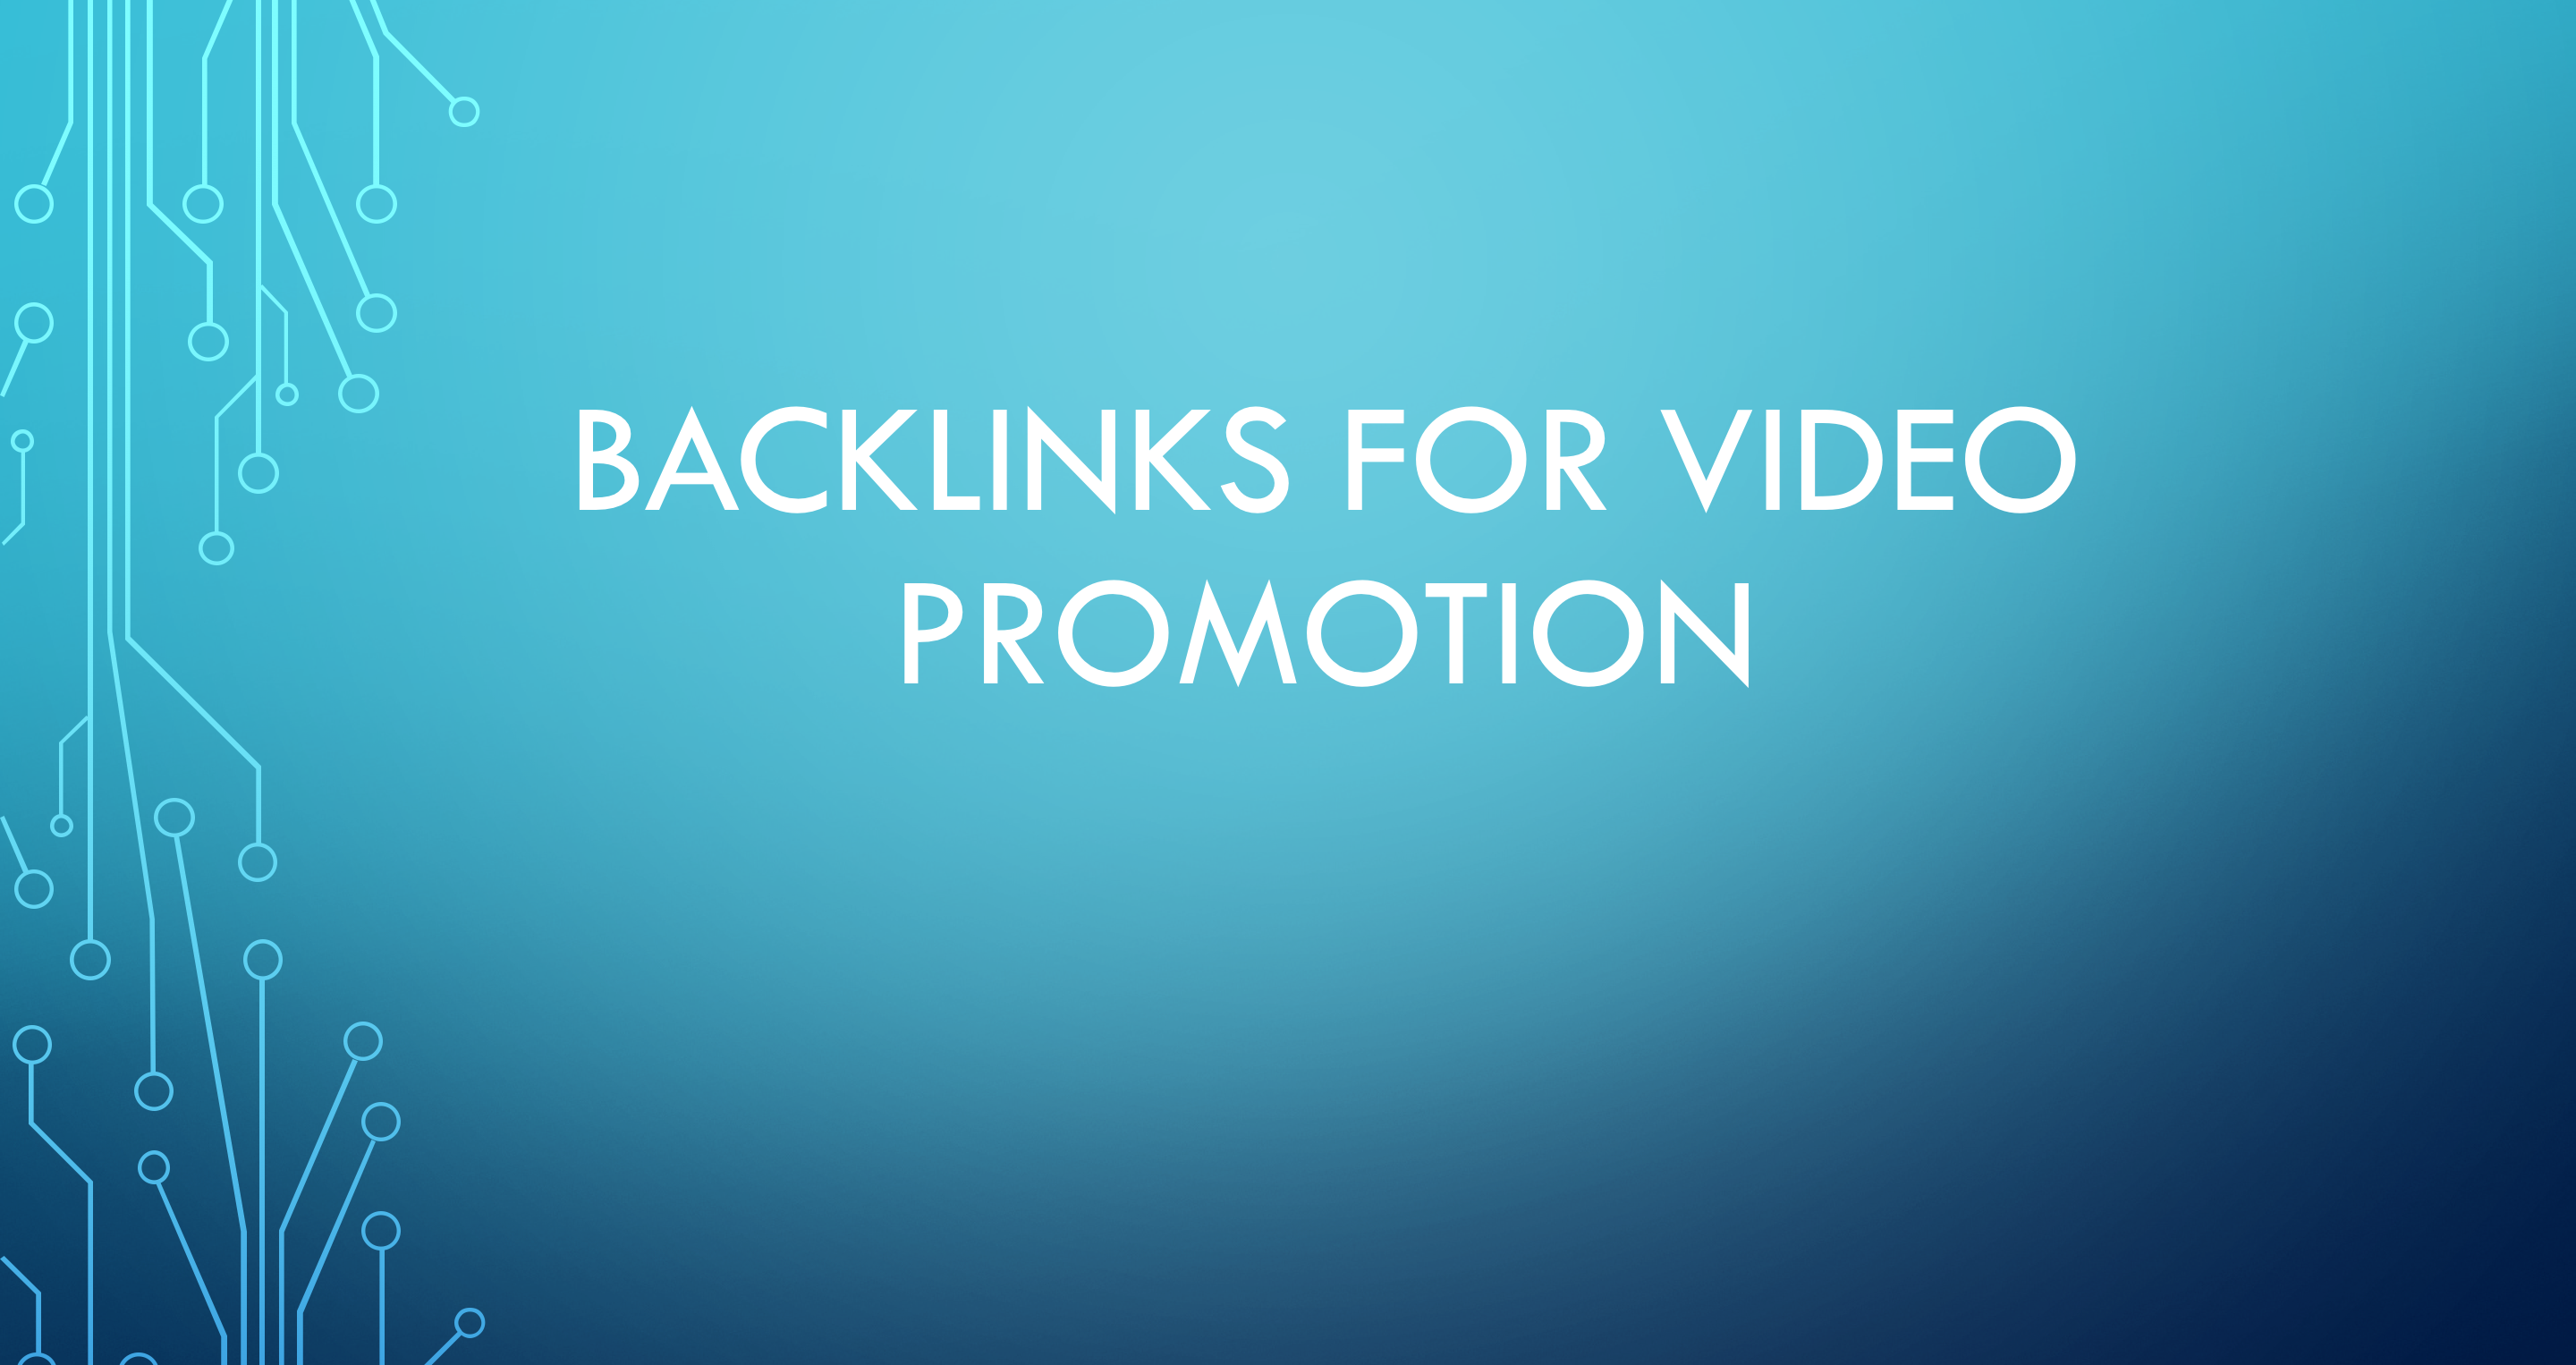 100,000 Backlinks for social media promotion